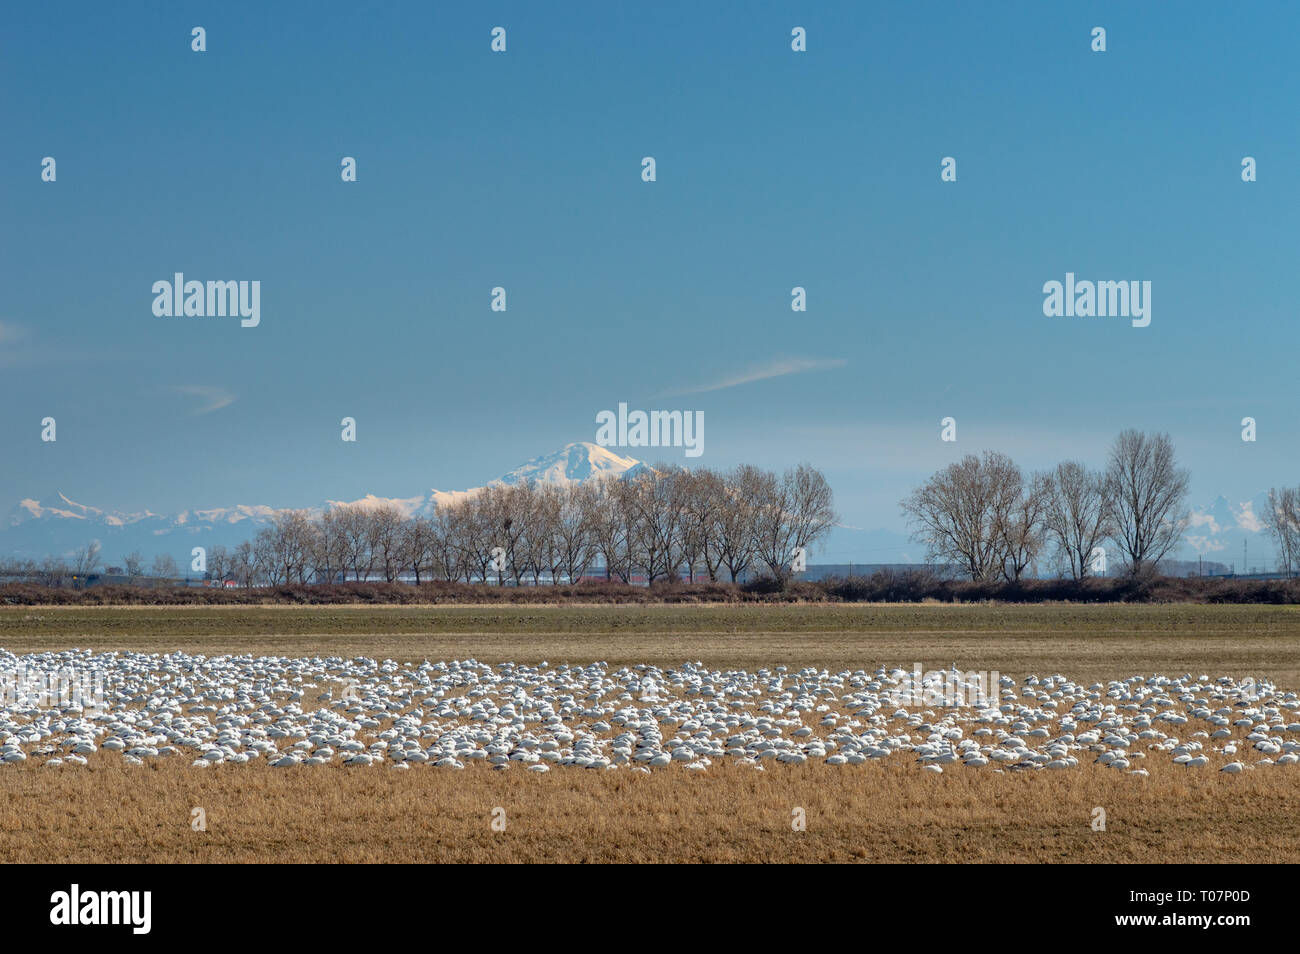 Overwintering migratory Lesser Snow Geese, Chen caerulescens, feeding and resting in an agricultural field at Brunswick Point, Ladner, BC. Stock Photo